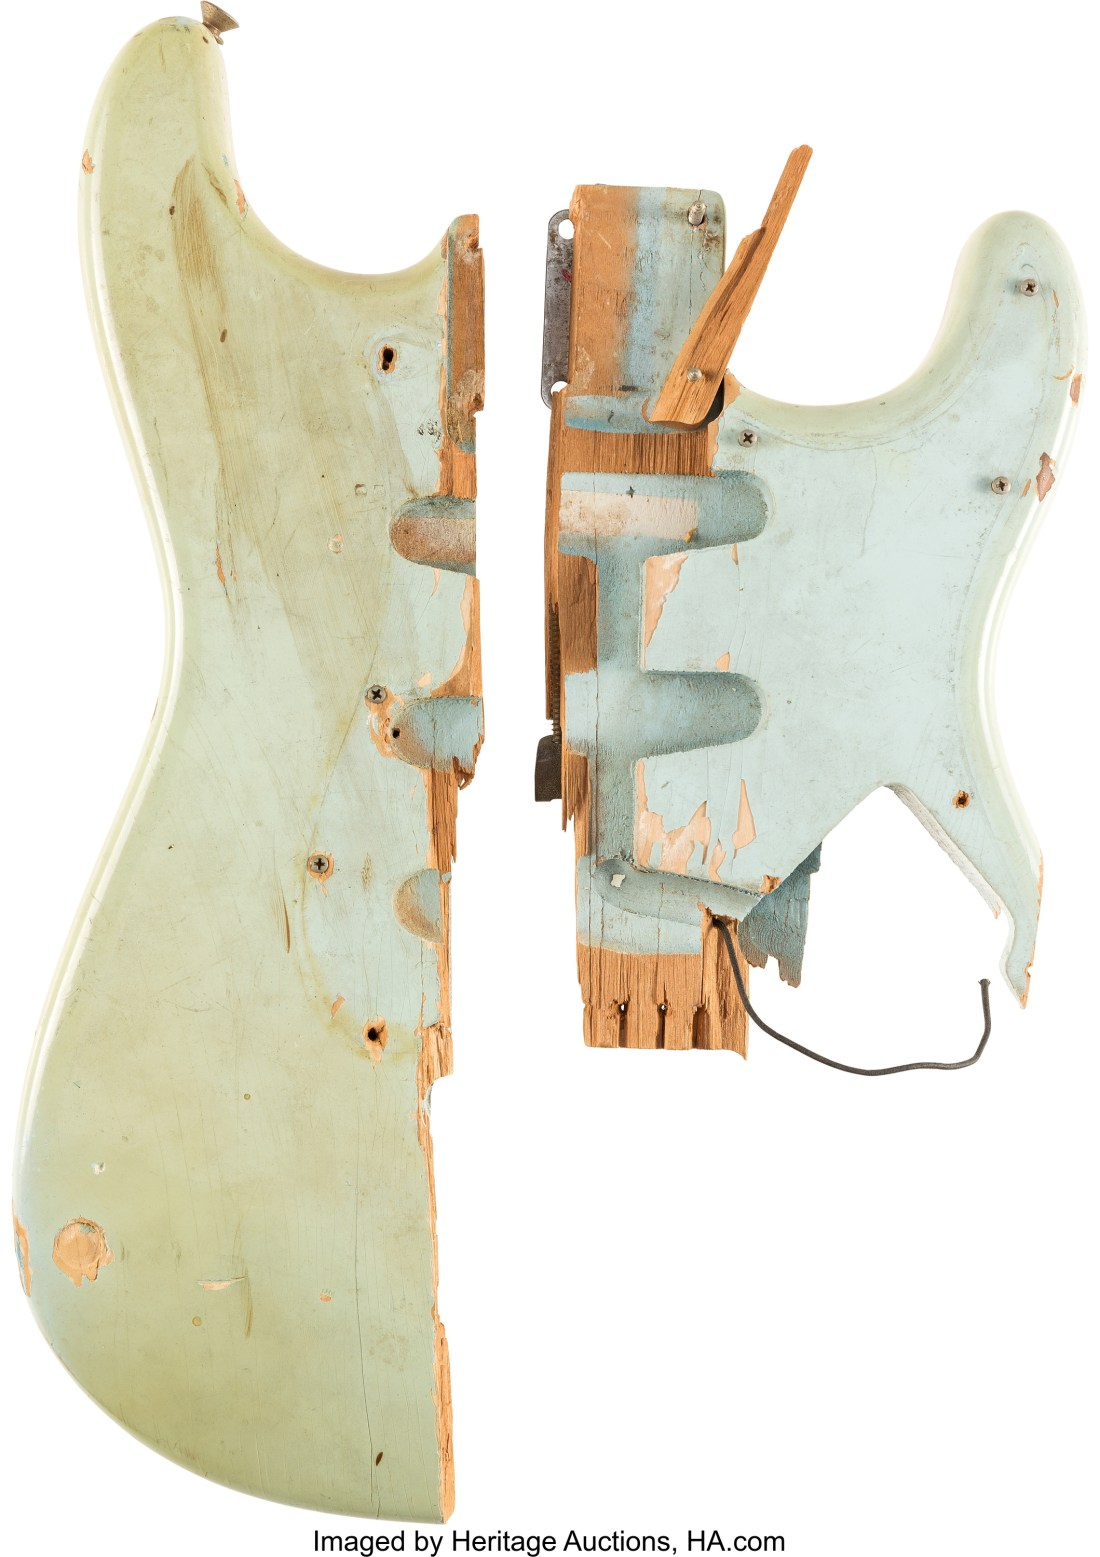 """A 1964 sonic blue Fender Stratocaster """"smasher,""""--a guitar played on stage and smashed by Pete Townshend of The Who--on December 1, 1967 at Long Island Arena in Commack, New York."""